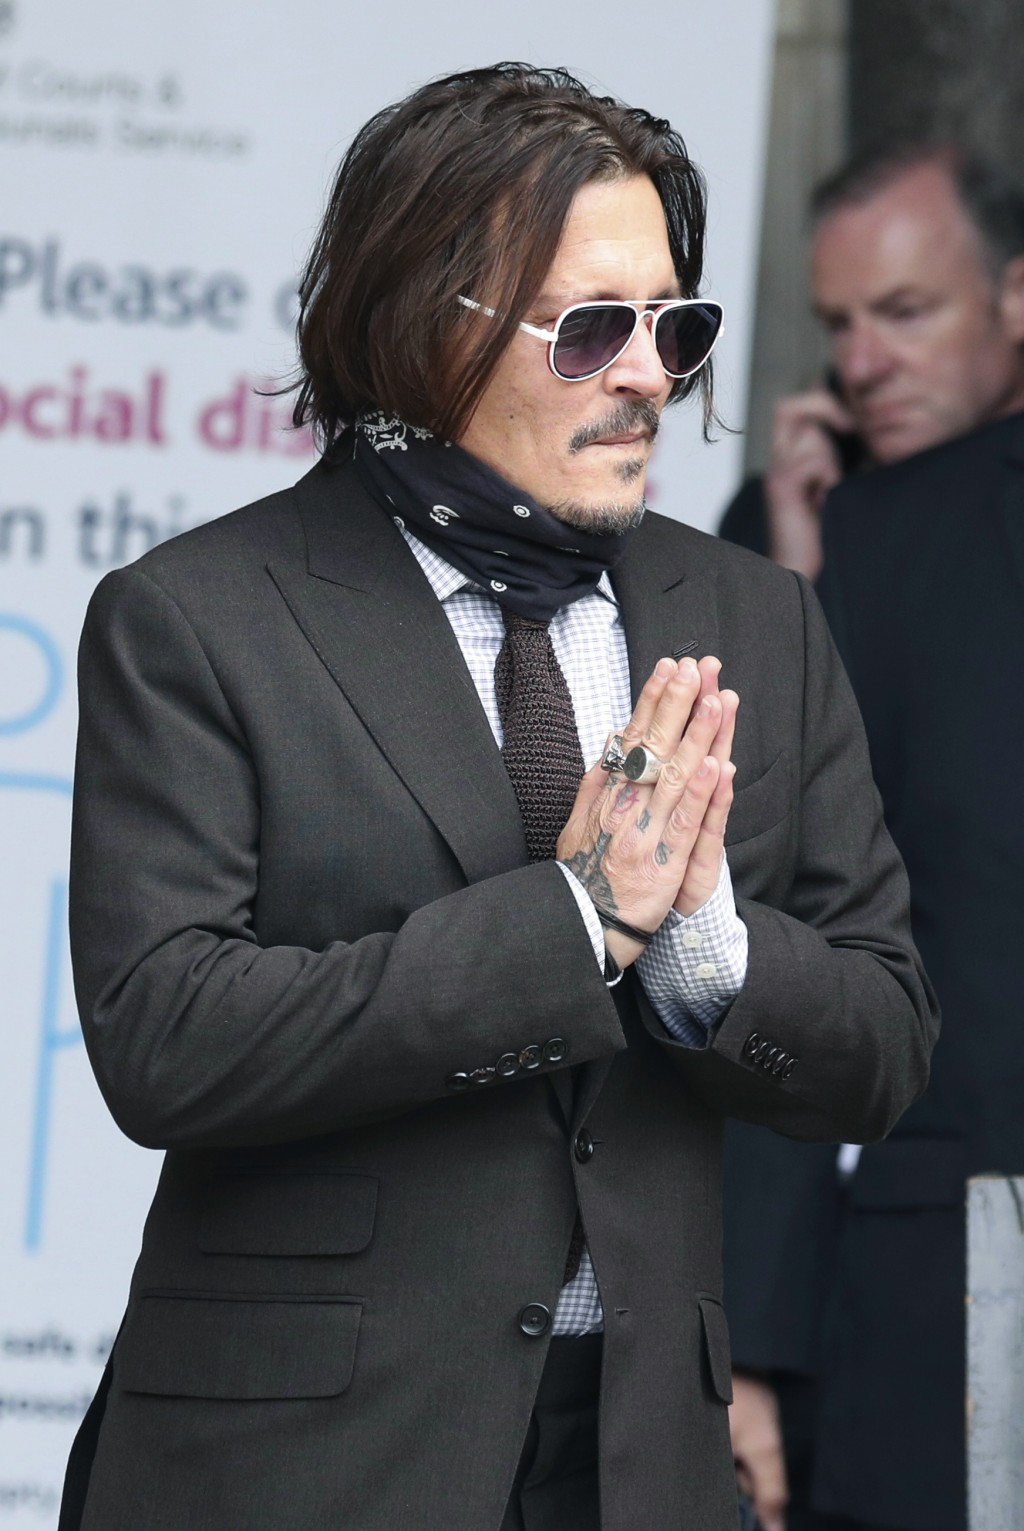 Actor Johnny Depp gestures as he arrives at the High Court to give evidence in his libel case, in London, Wednesday July 15, 2020. Depp is suing News ...